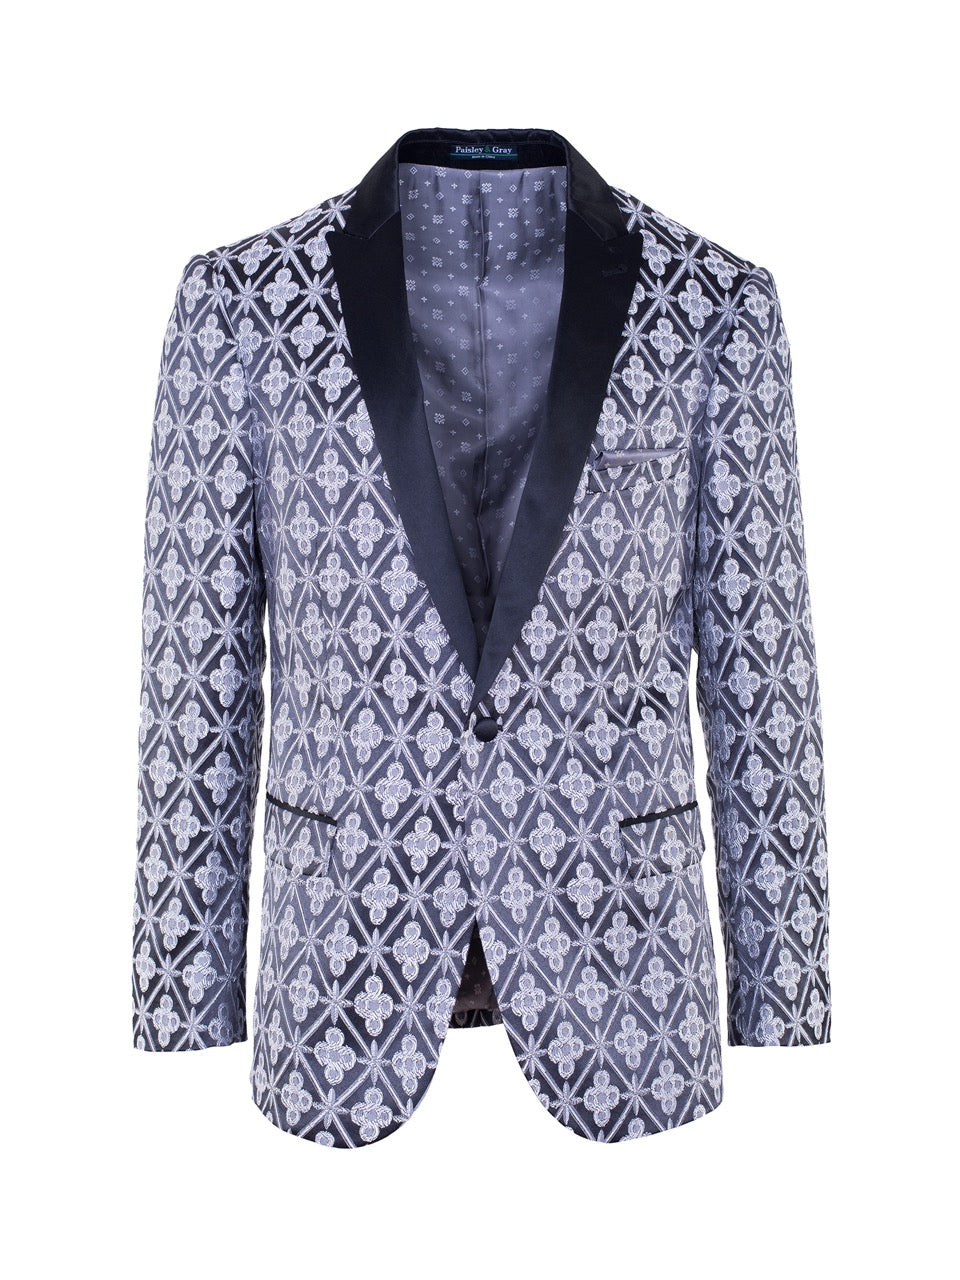 Grosvenor Peak Tuxedo Jacket - Black & Silver Brocade